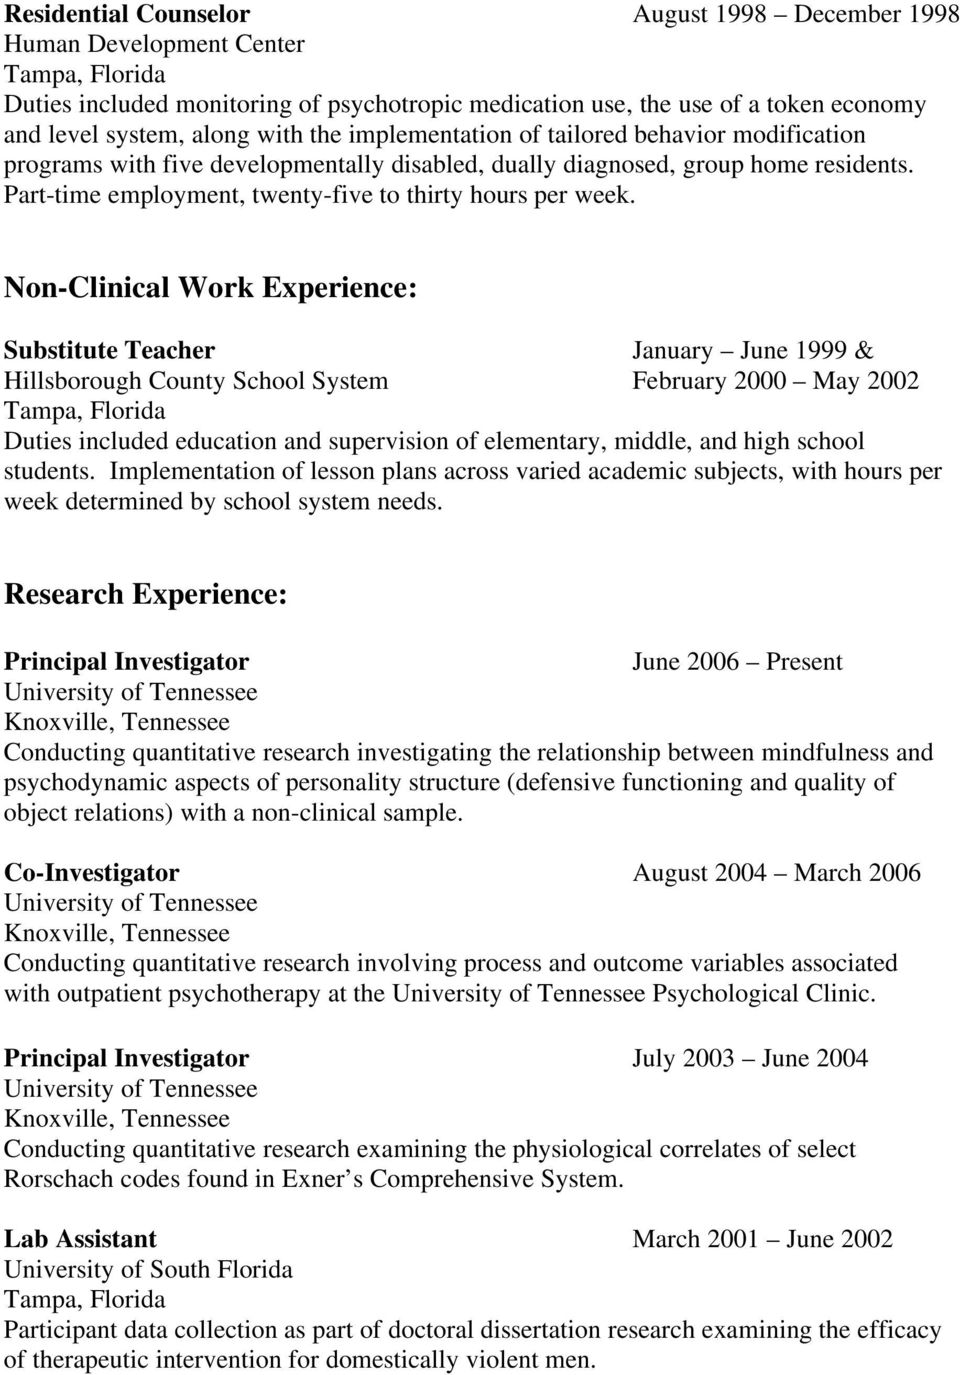 Non-Clinical Work Experience: Substitute Teacher January June 1999 & Hillsborough County School System February 2000 May 2002 Duties included education and supervision of elementary, middle, and high